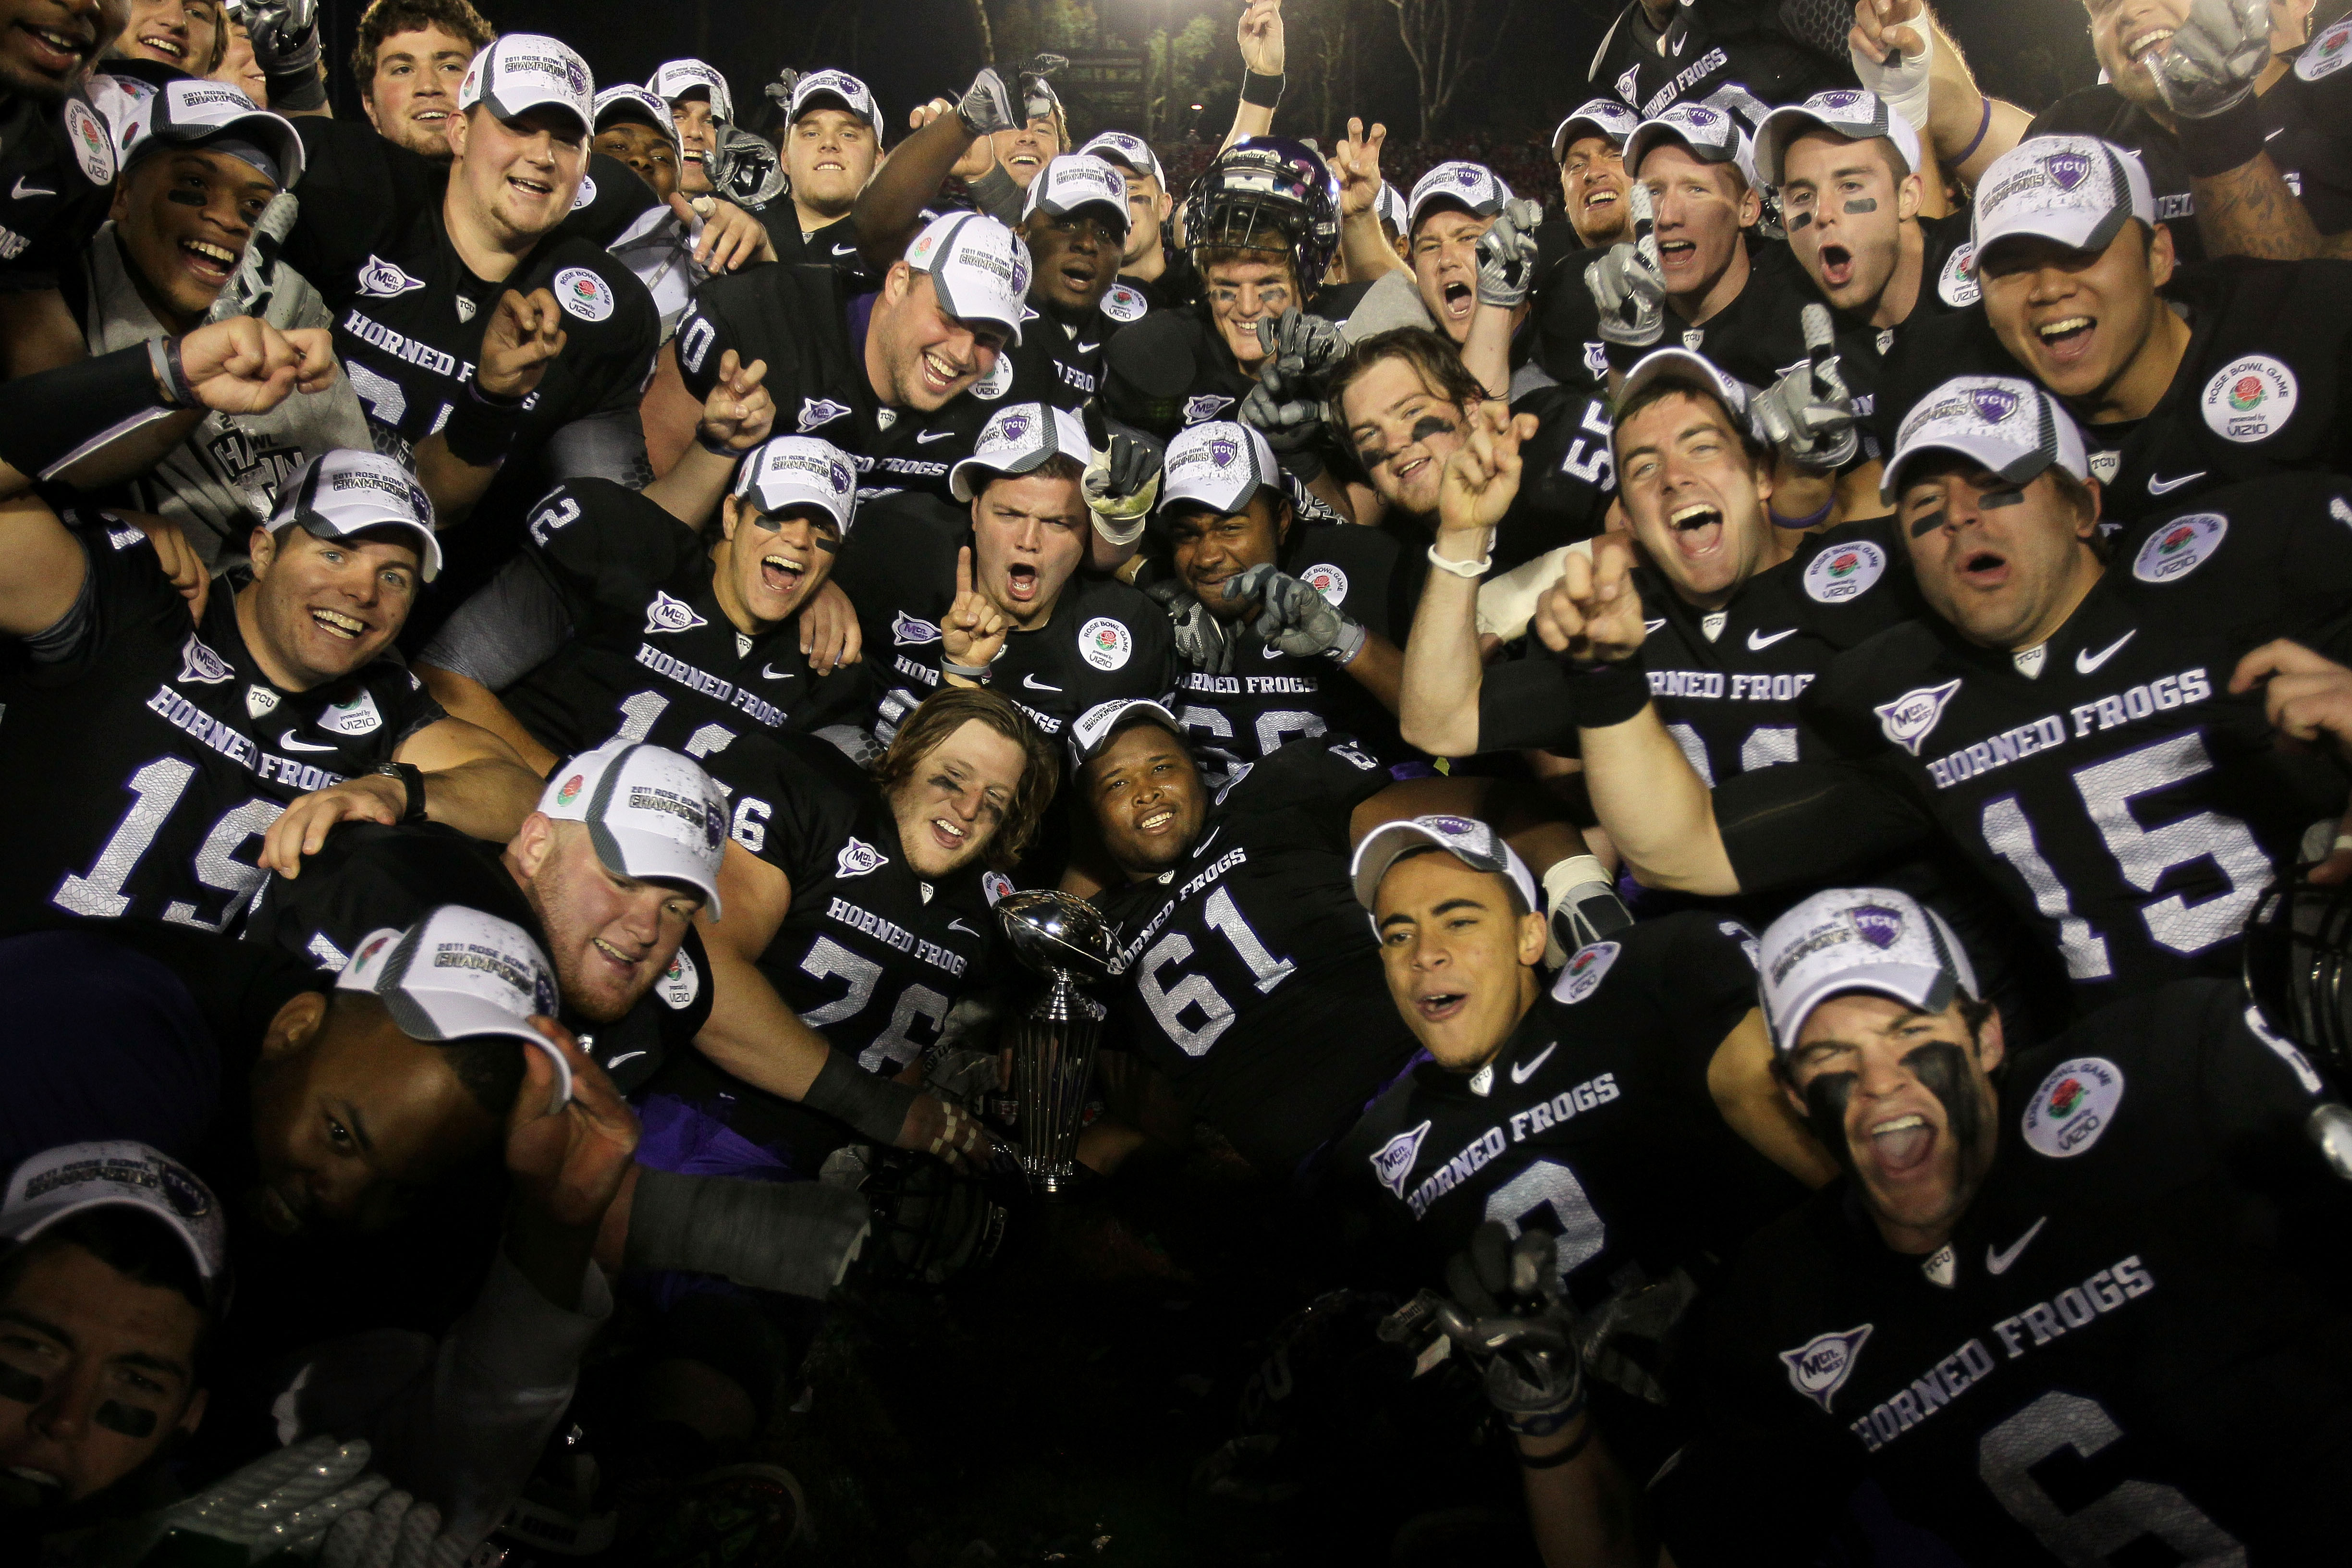 PASADENA, CA - JANUARY 01:  The TCU Horned Frogs celebrate after defeating the Wisconsin Badgers 21-19 in the 97th Rose Bowl game on January 1, 2011 in Pasadena, California.  (Photo by Jeff Gross/Getty Images)